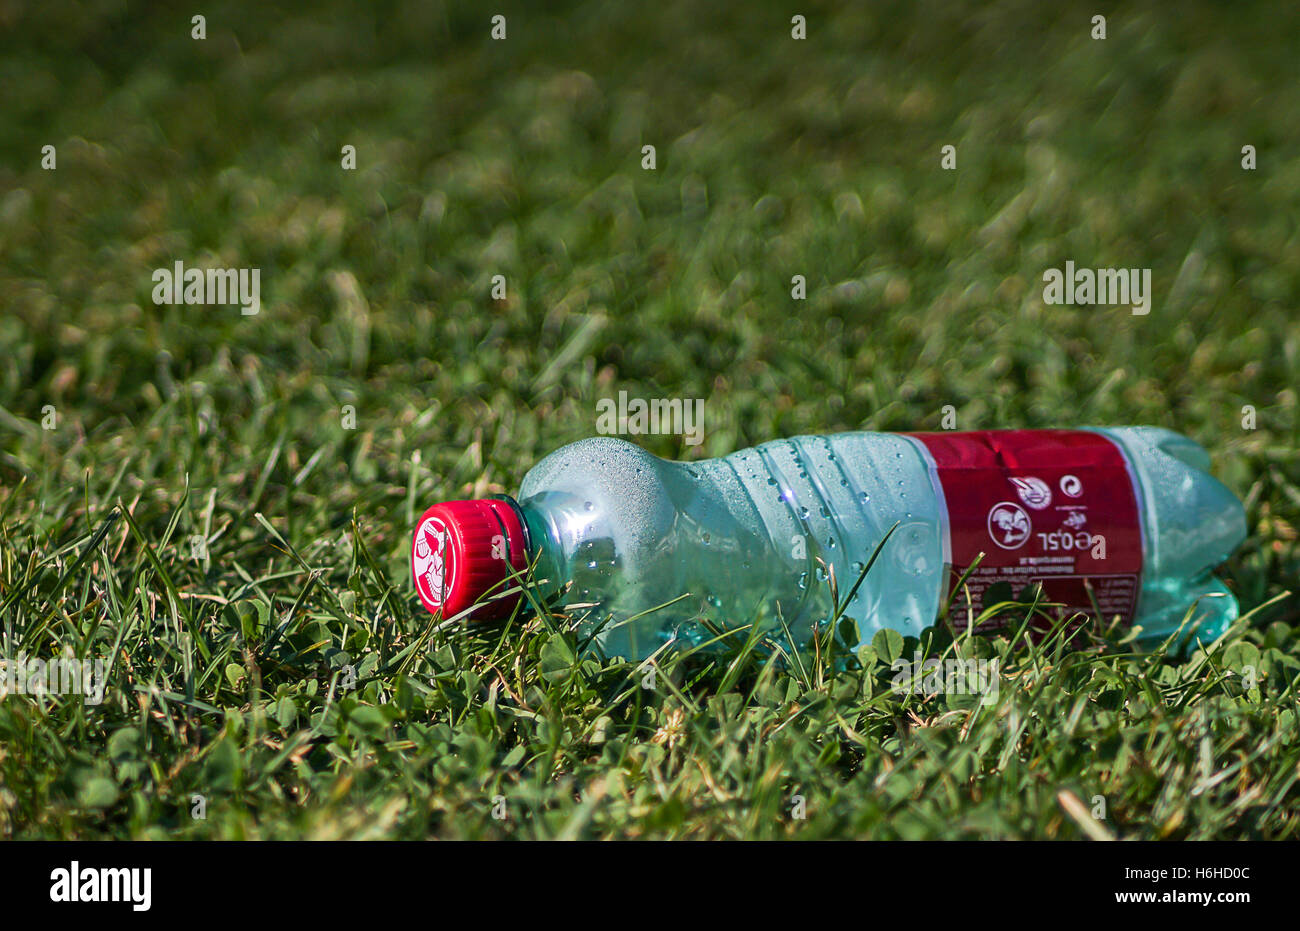 Plastic bottle on the grass - Stock Image